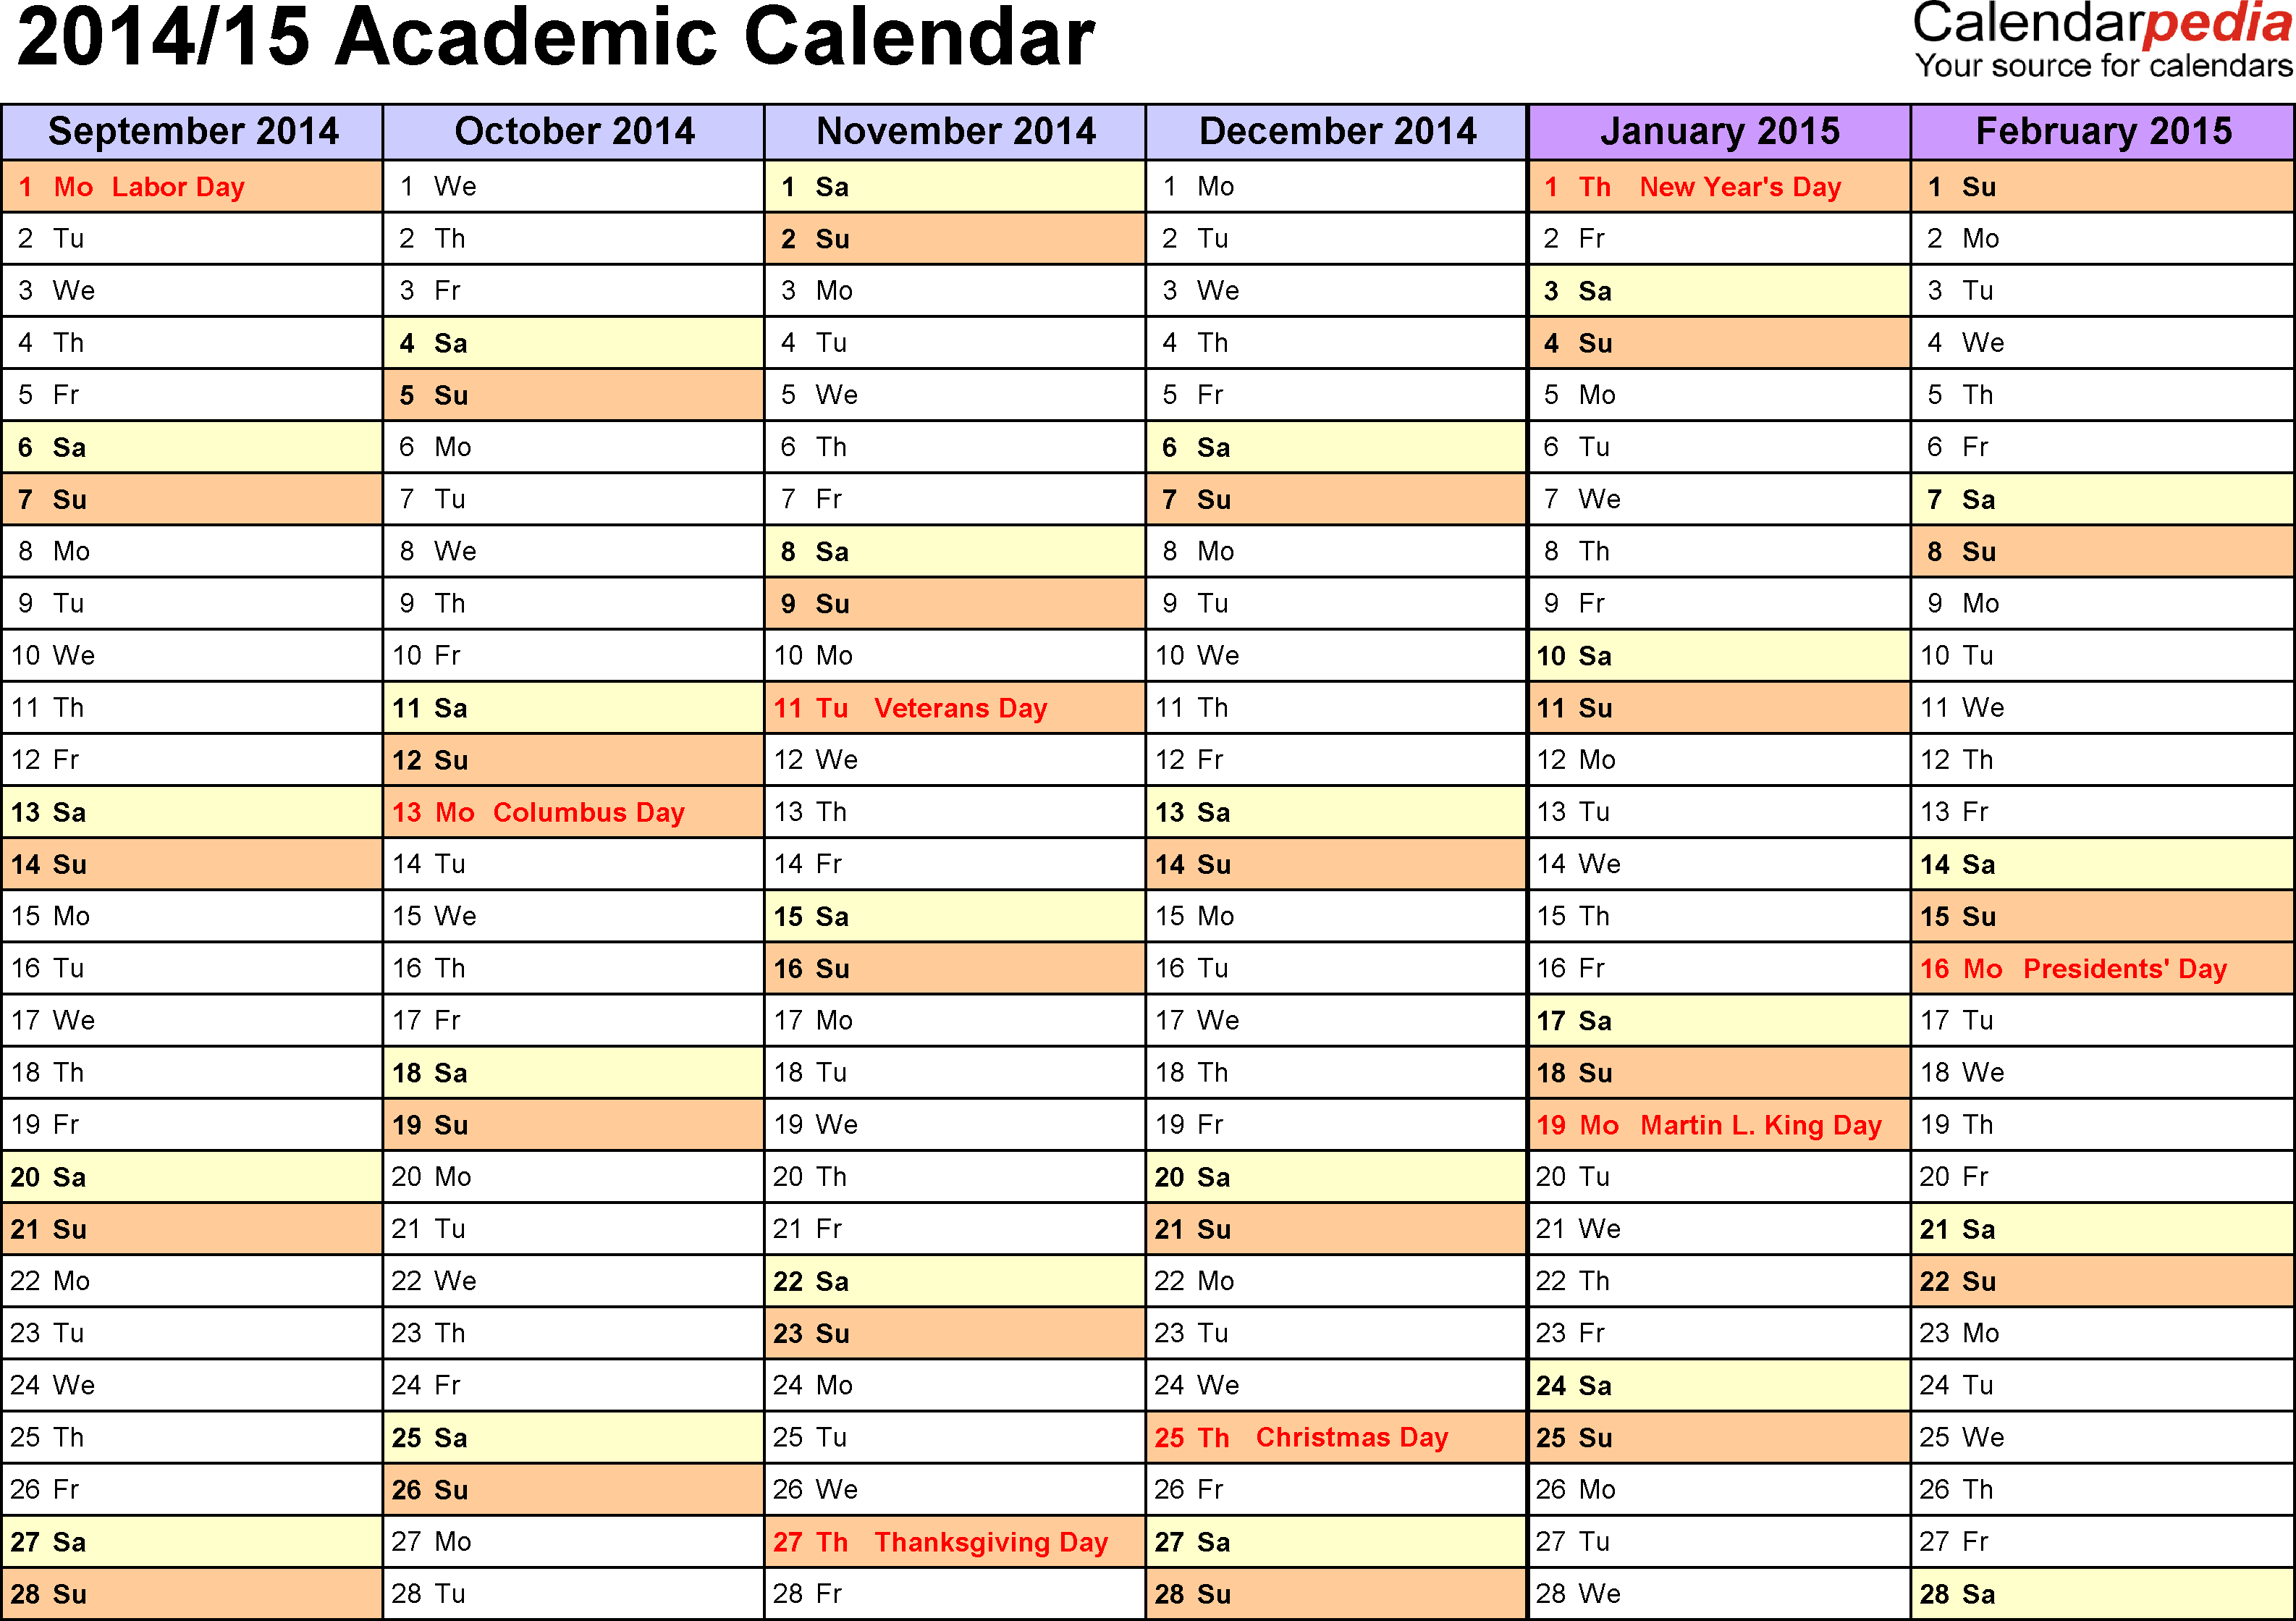 Academic calendars 2014/2015 as free printable PDF templates